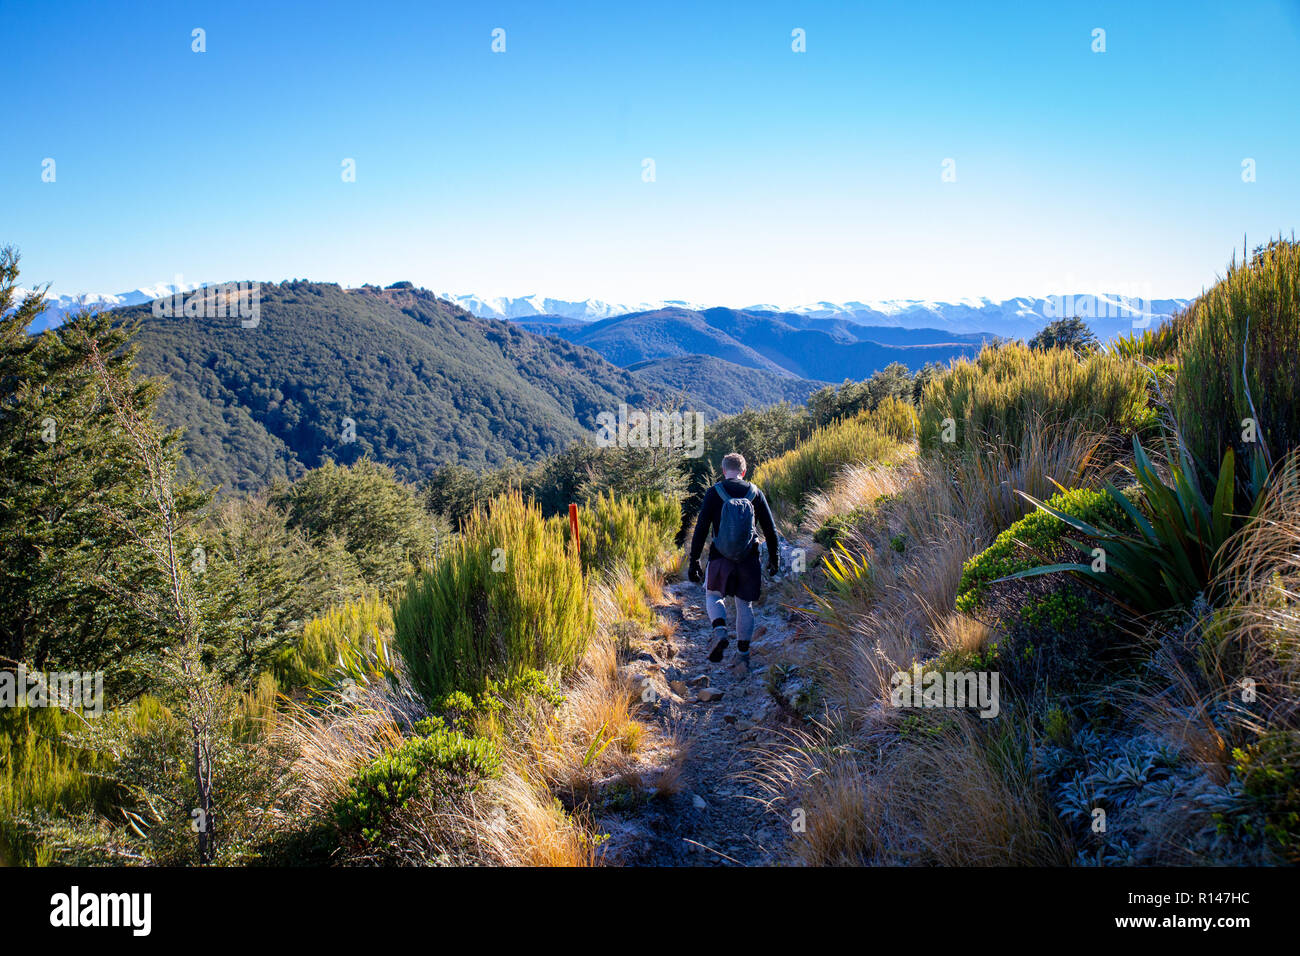 A man enjoying the outdoors hikes along a hillside track in the mountains in New Zealand - Stock Image